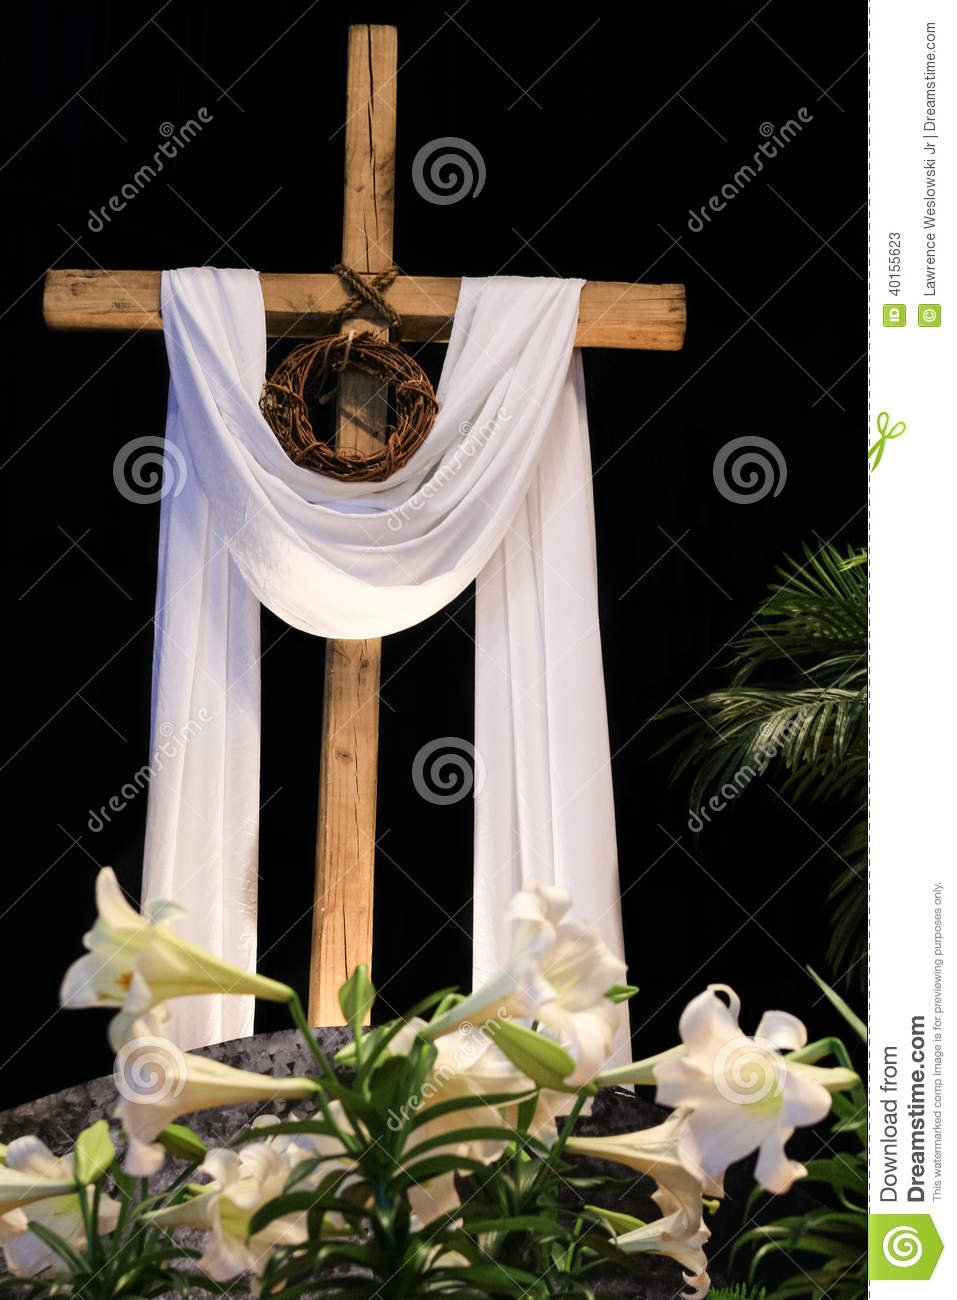 ... - Lilies, Cross And Crown Of Thorns Stock Photo - Image: 40155623